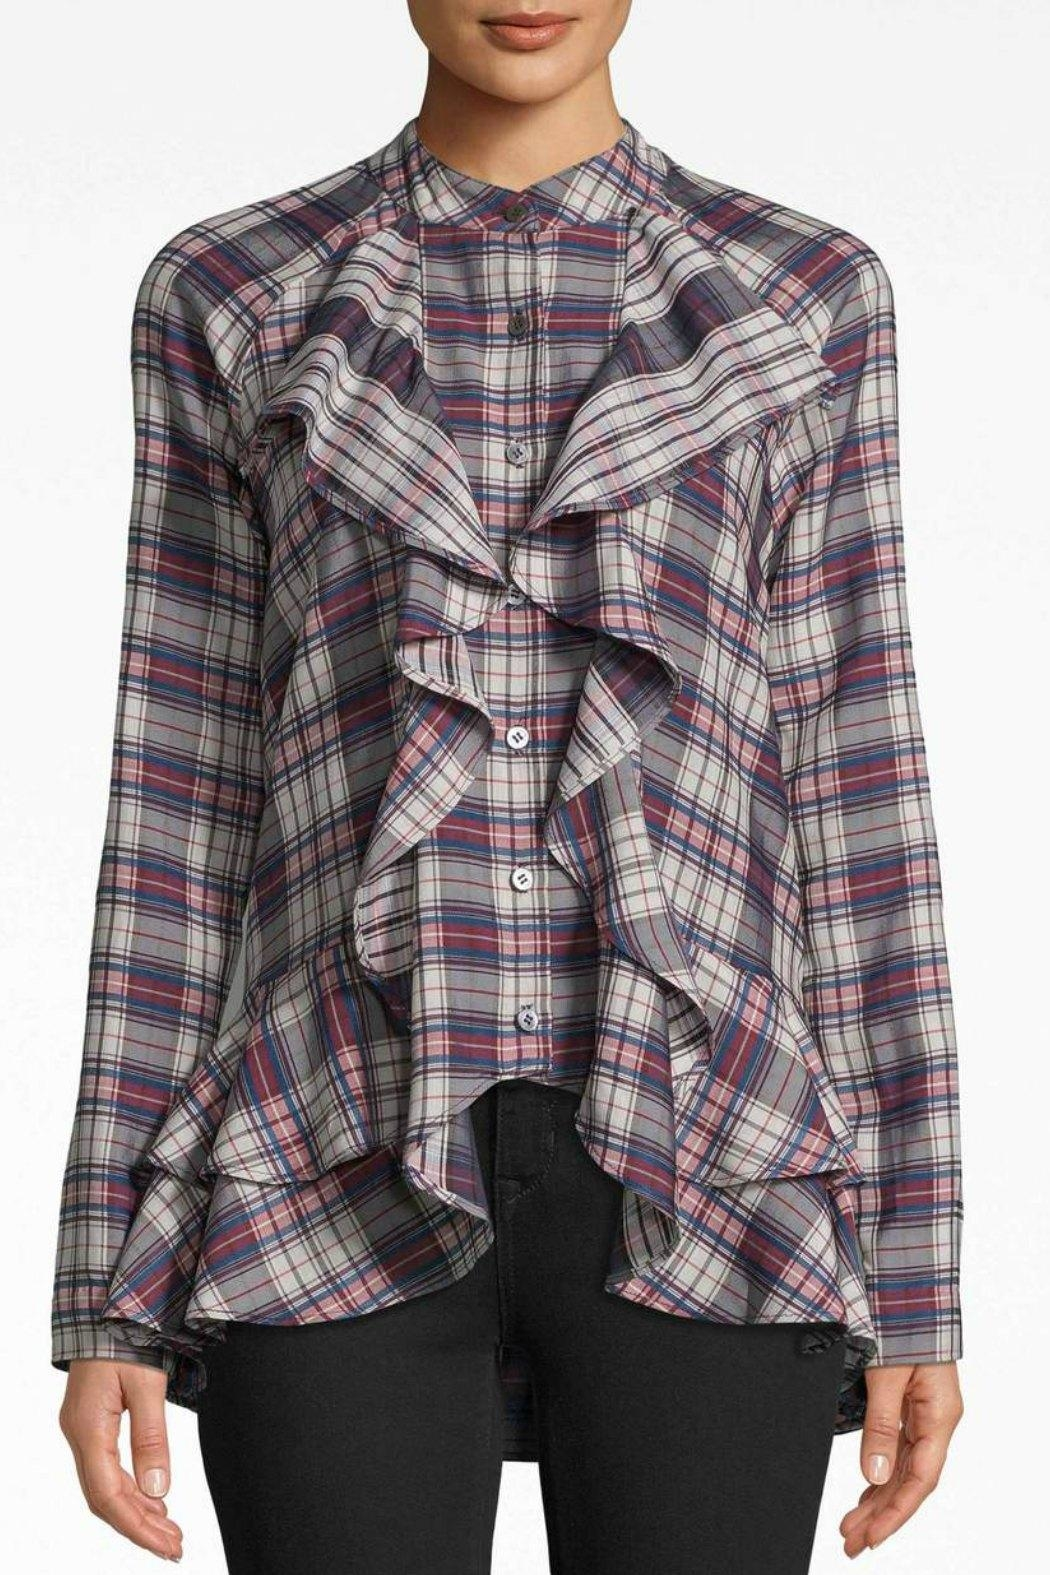 Nicole Miller Plaid Ruffle Shirt - Front Cropped Image